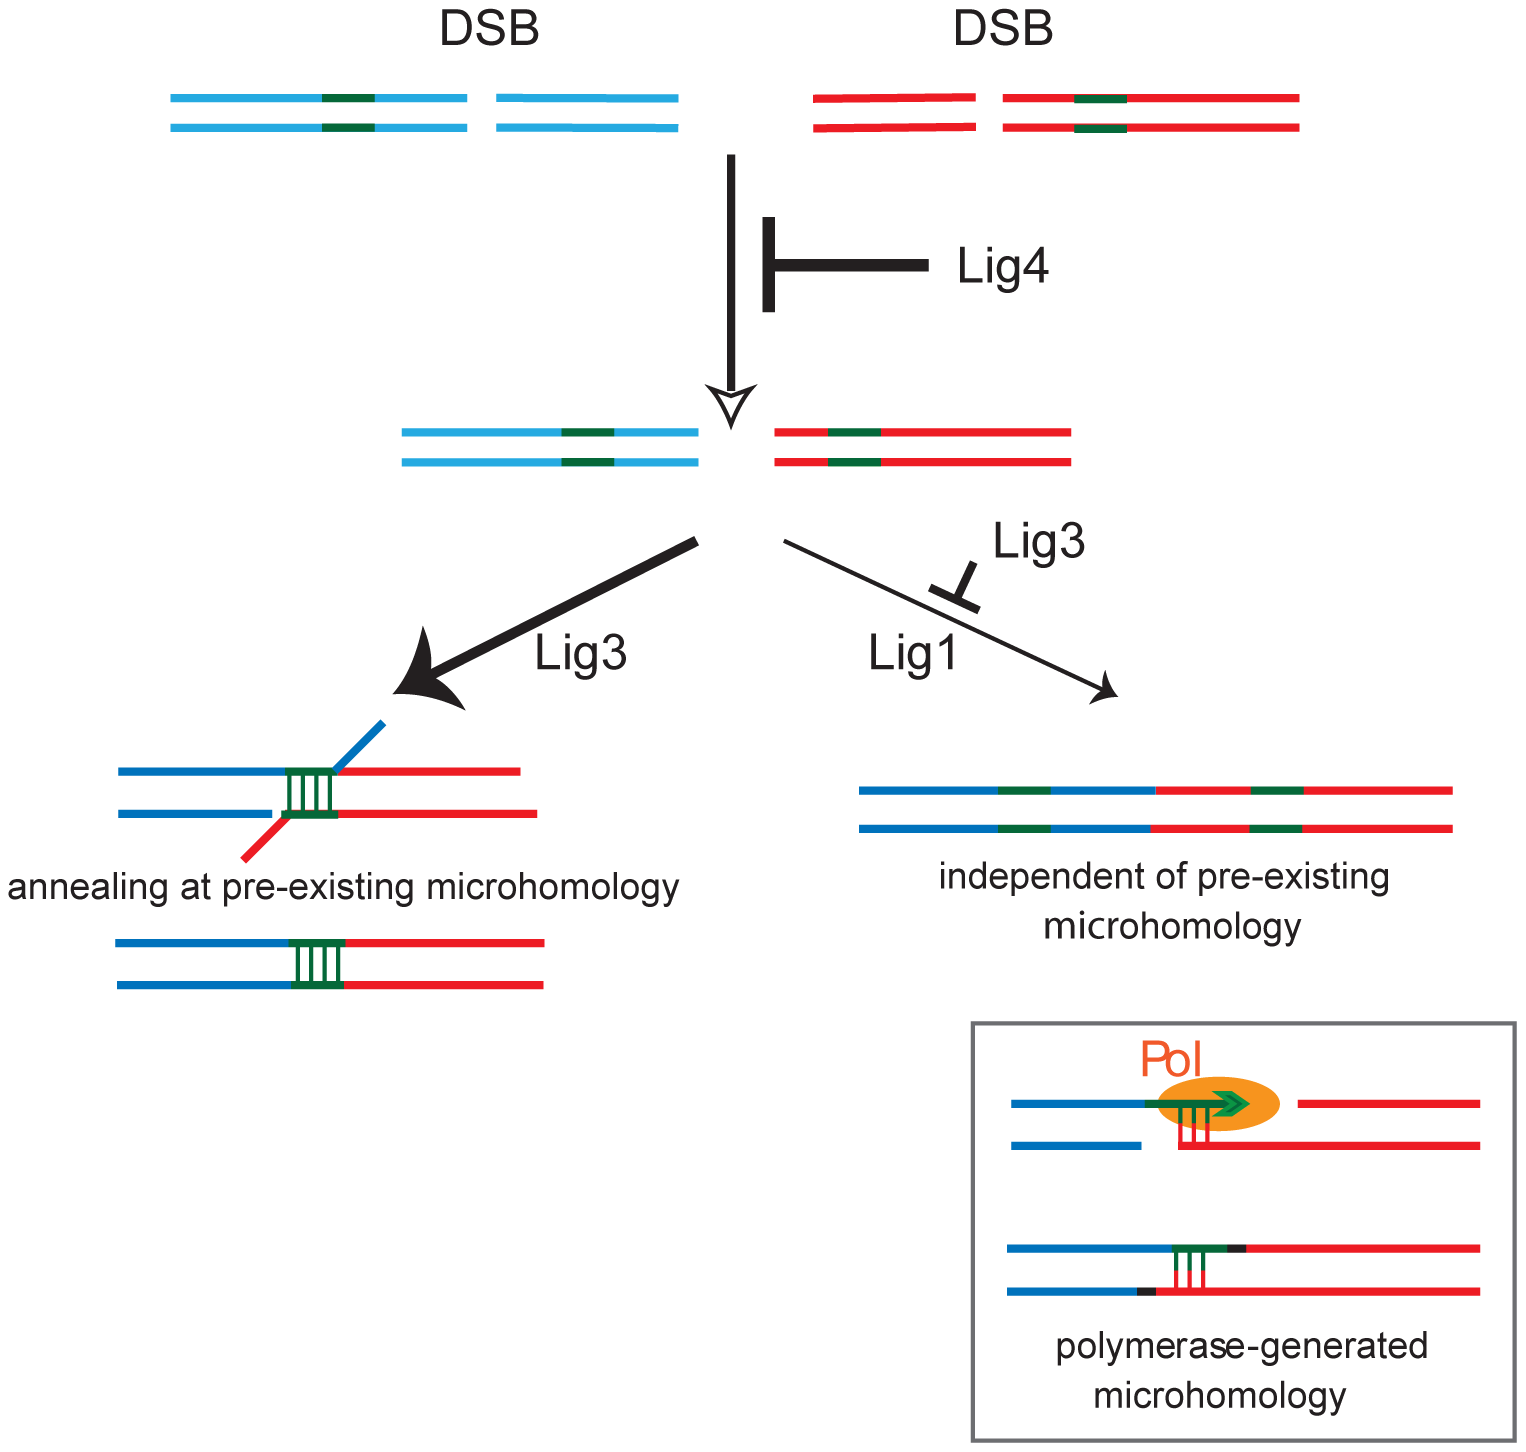 Model for the role of the three mammalian DNA ligases in chromosomal translocation formation in mouse cells.